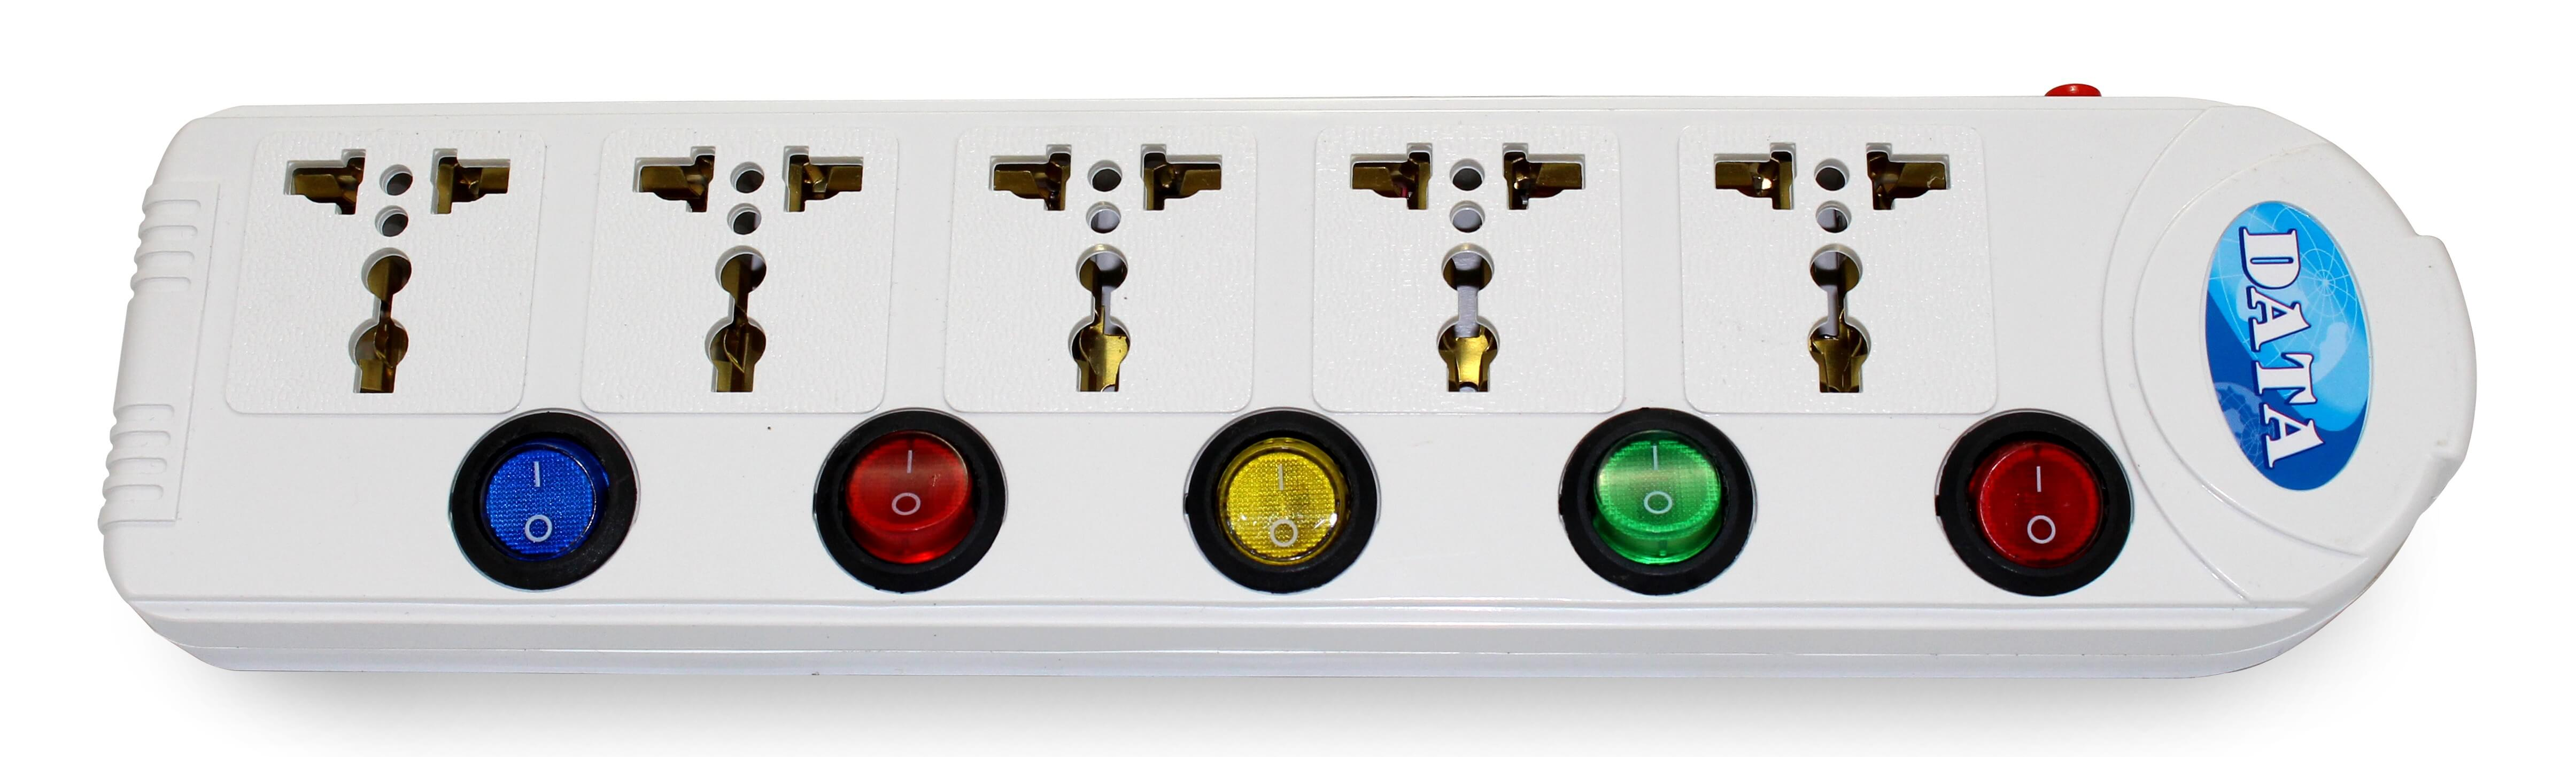 universal plug powerboard - essential for family travellers in the Middle East where there are multiple socket types | #traveltips #middleeast